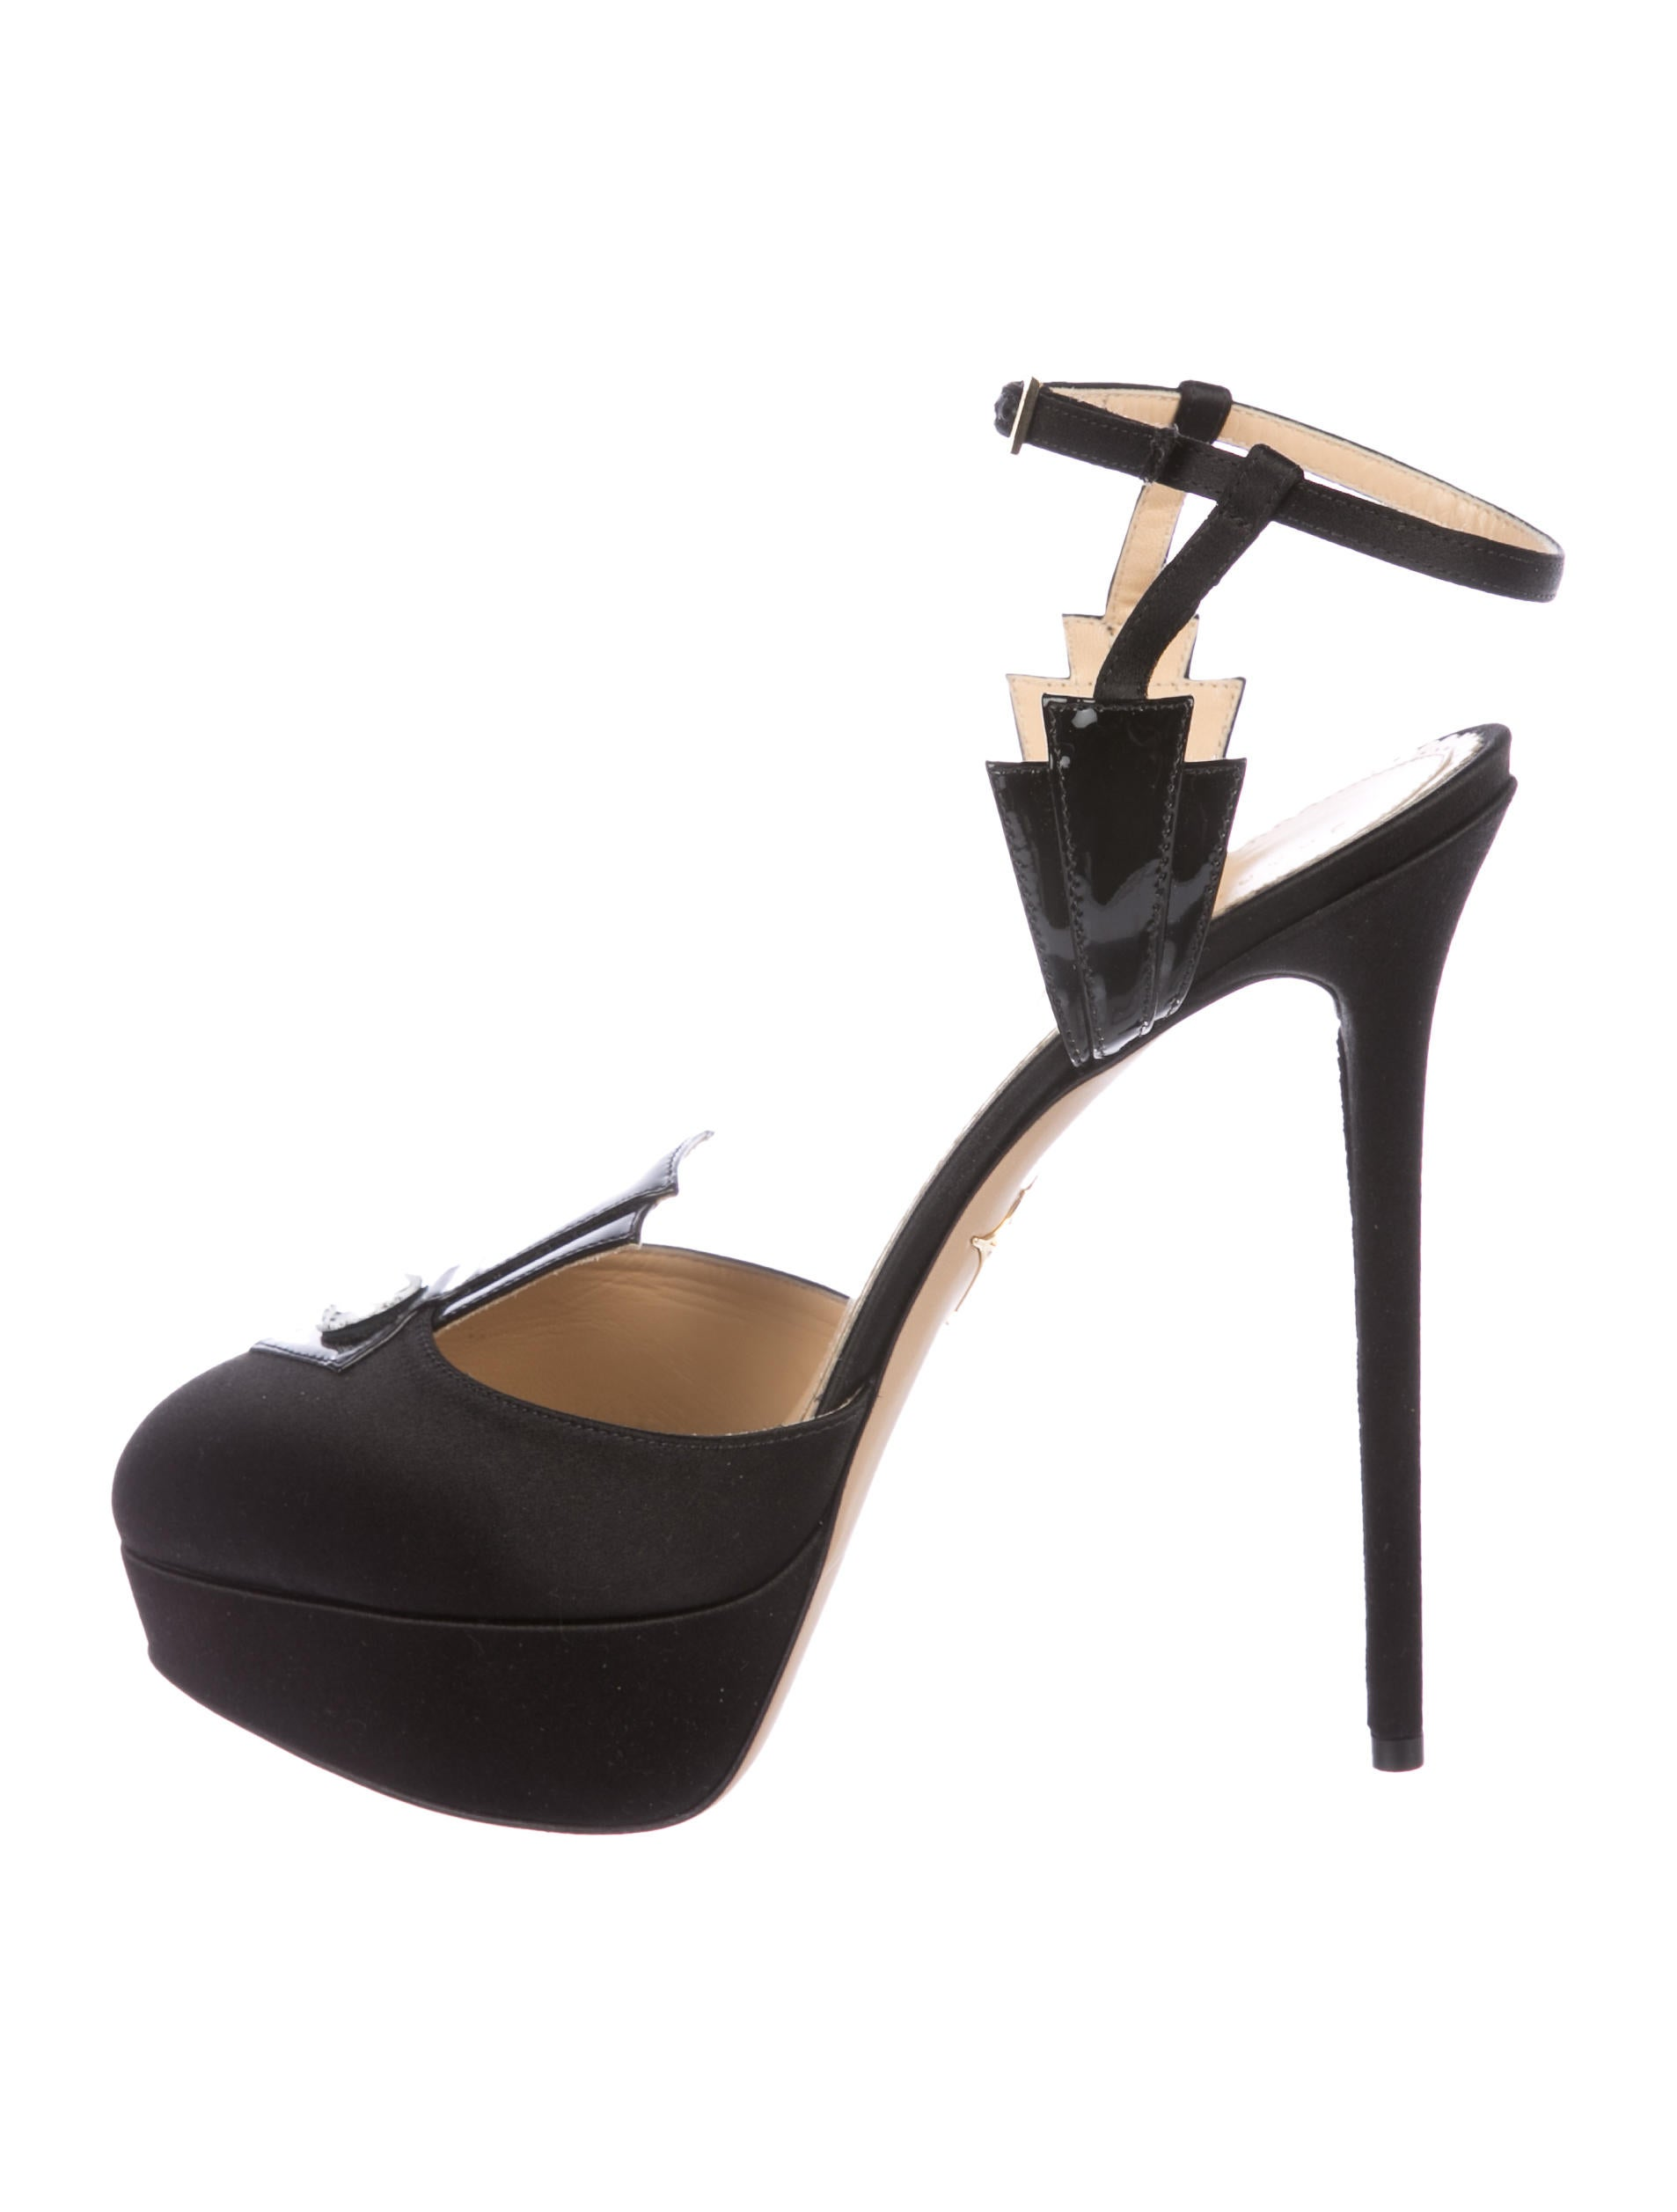 Charlotte Olympia Empire State Platform Pumps w/ Tags free shipping best place nA6P8HksR